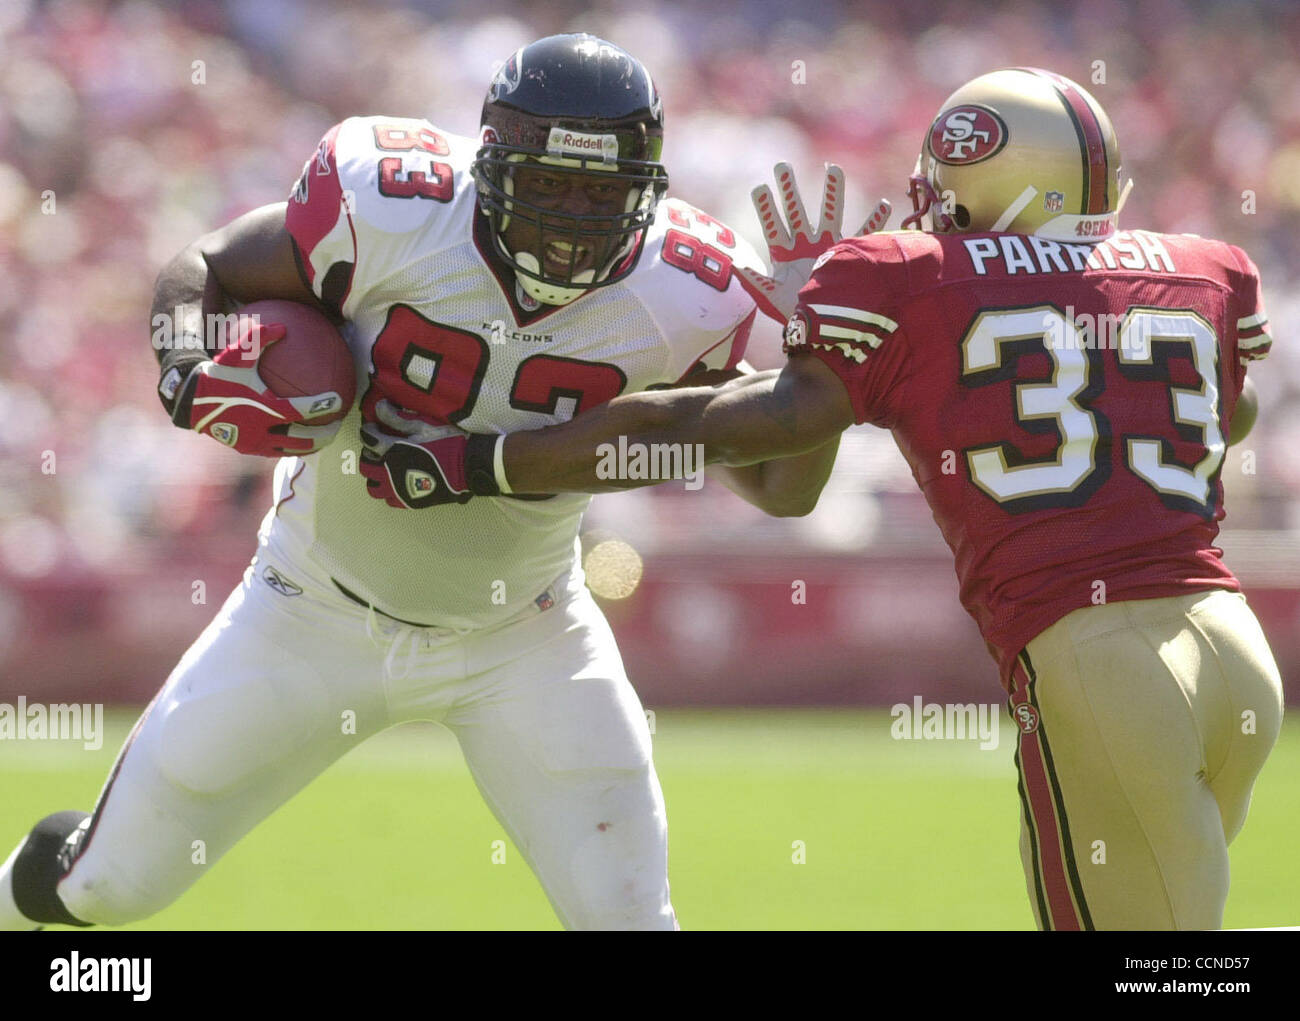 San Francisco 49er #33 Tony Parrish is unable to stop       Atlanta's #83 Alge Crumpler in the first quarter - Stock Image